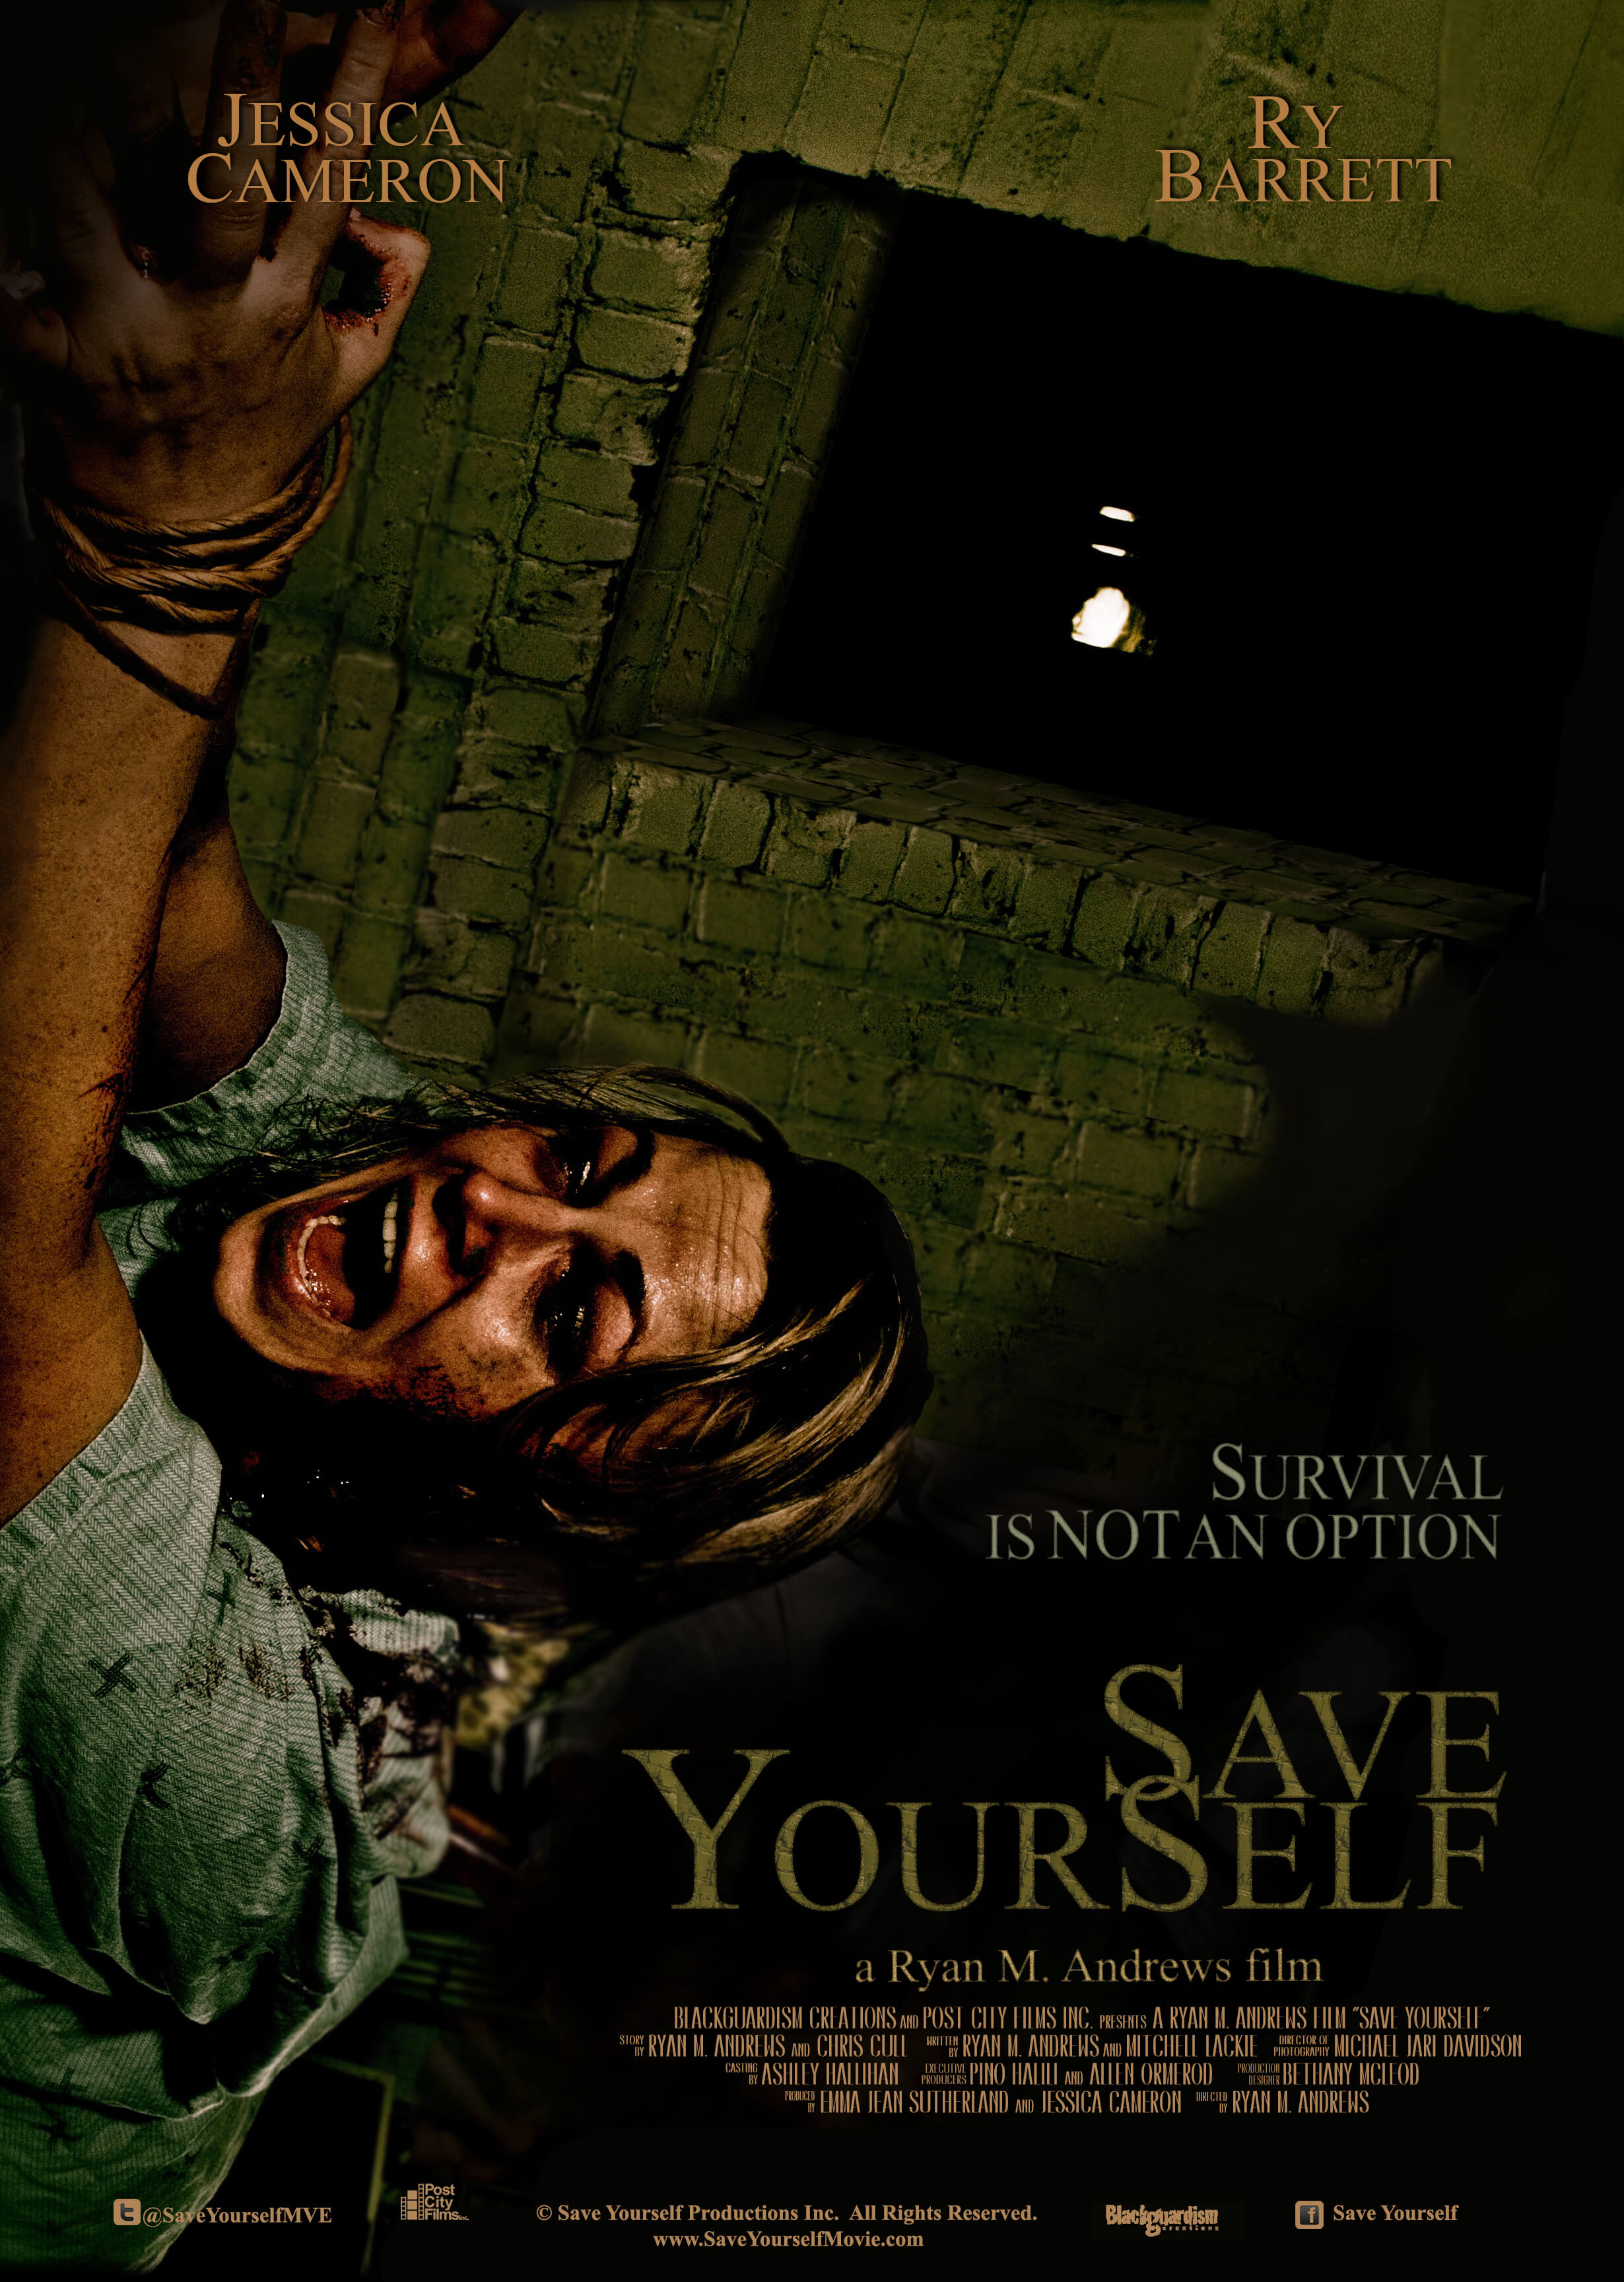 Save Yourself TeaserV10 1 - Save Yourself from this Trailer